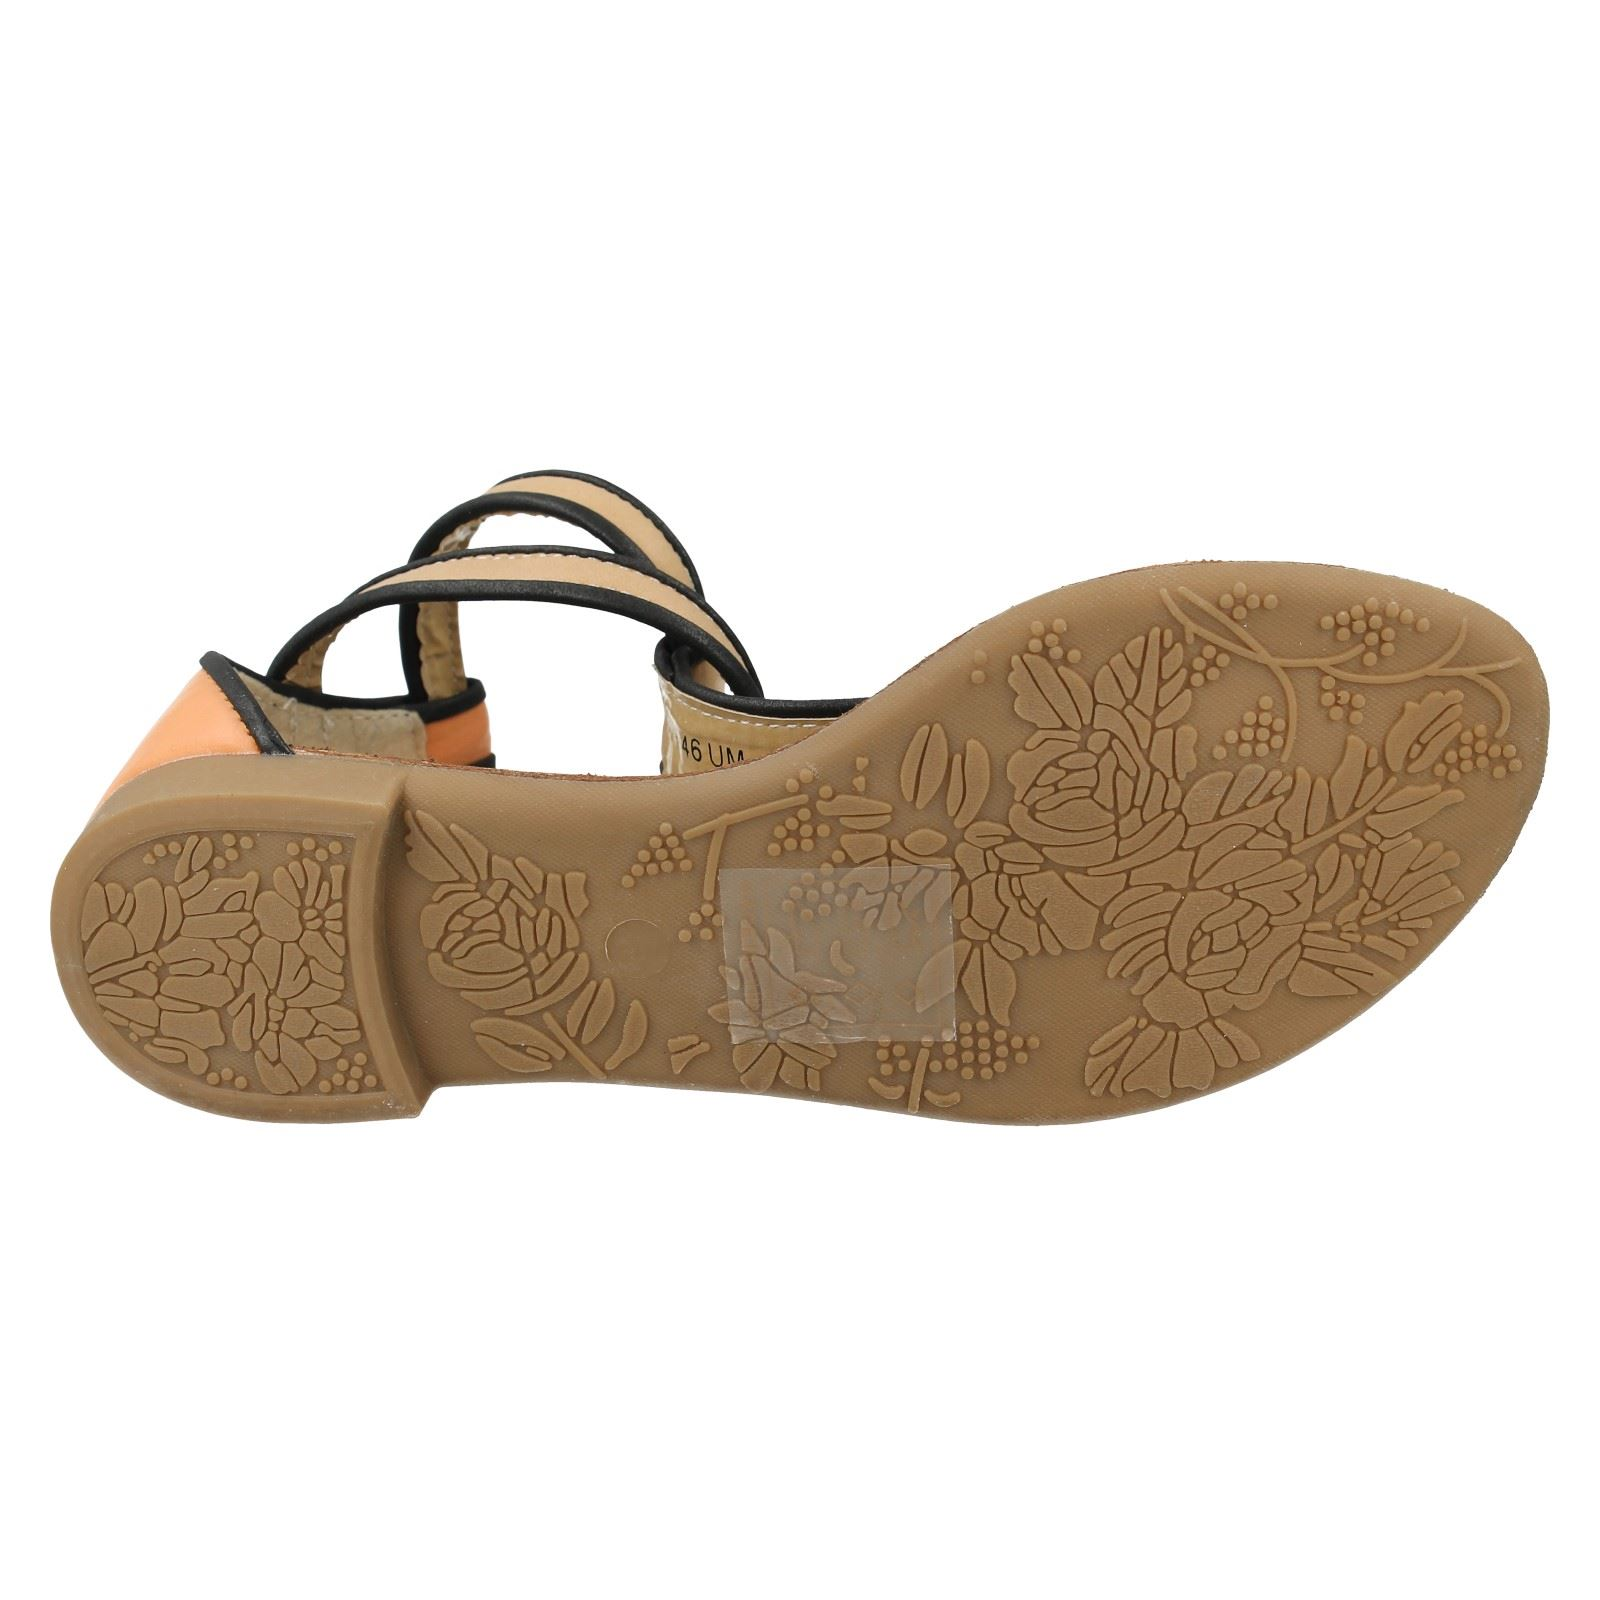 Damas Savannah Toe Post Sandalias De Estilo-L6746